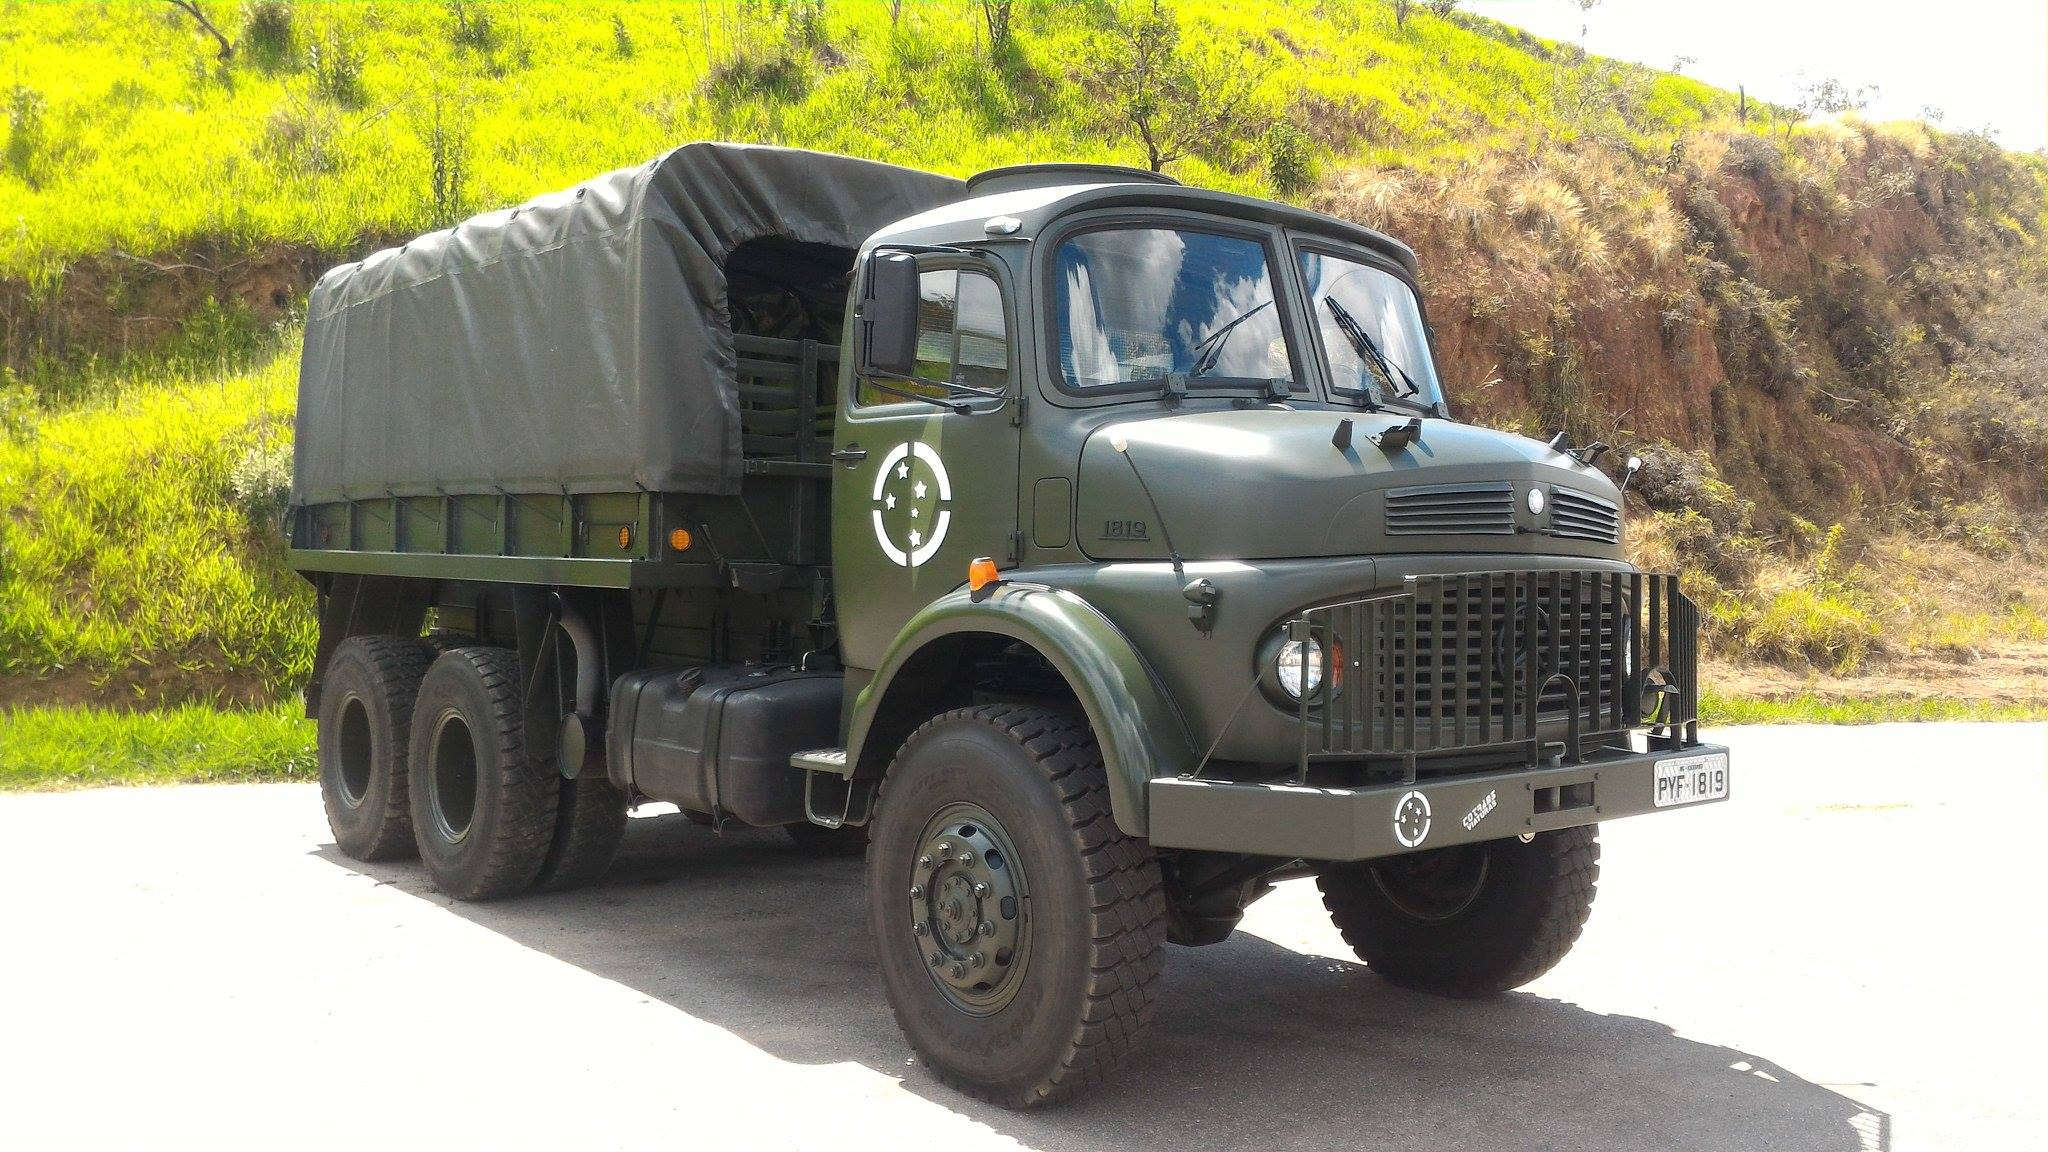 Made in Brazil : Mercedes-Benz LG-1819 6X6